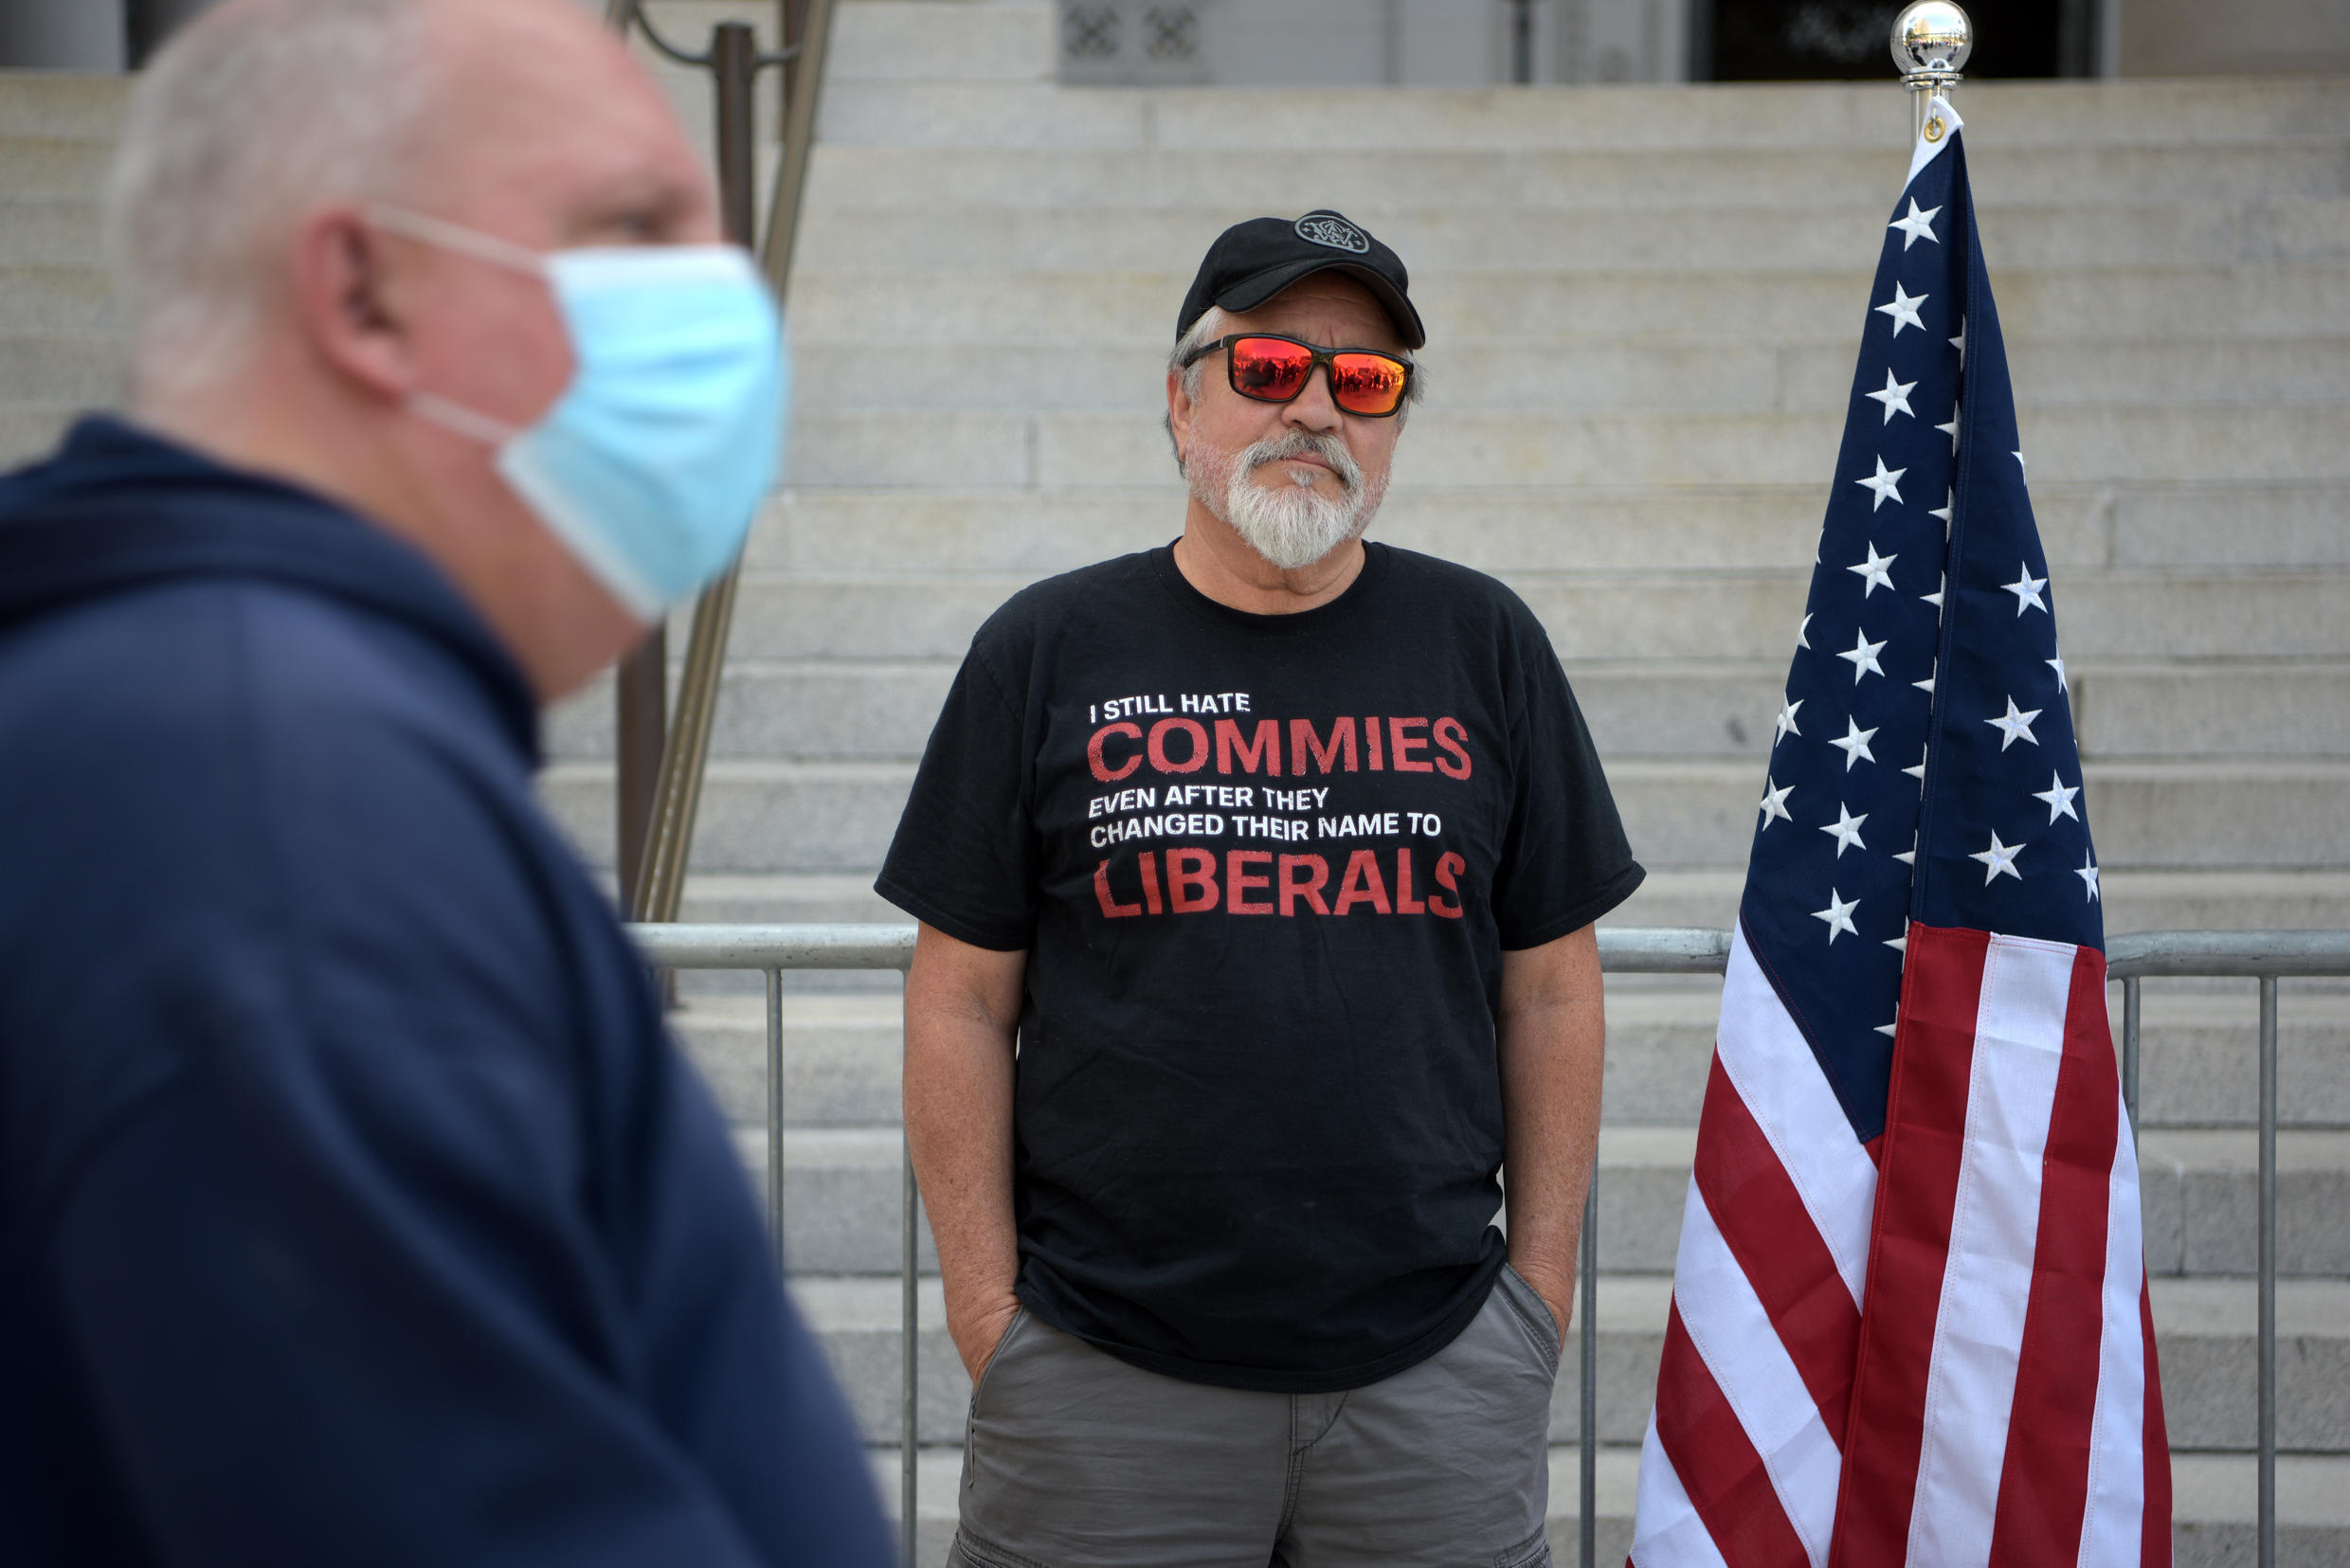 A man wearing a facemask walks past another standing with a US flag during a demonstration against stay-at-home orders near Los Angeles City Hall on May 1, 2020, amid the novel coronavirus pandemic.